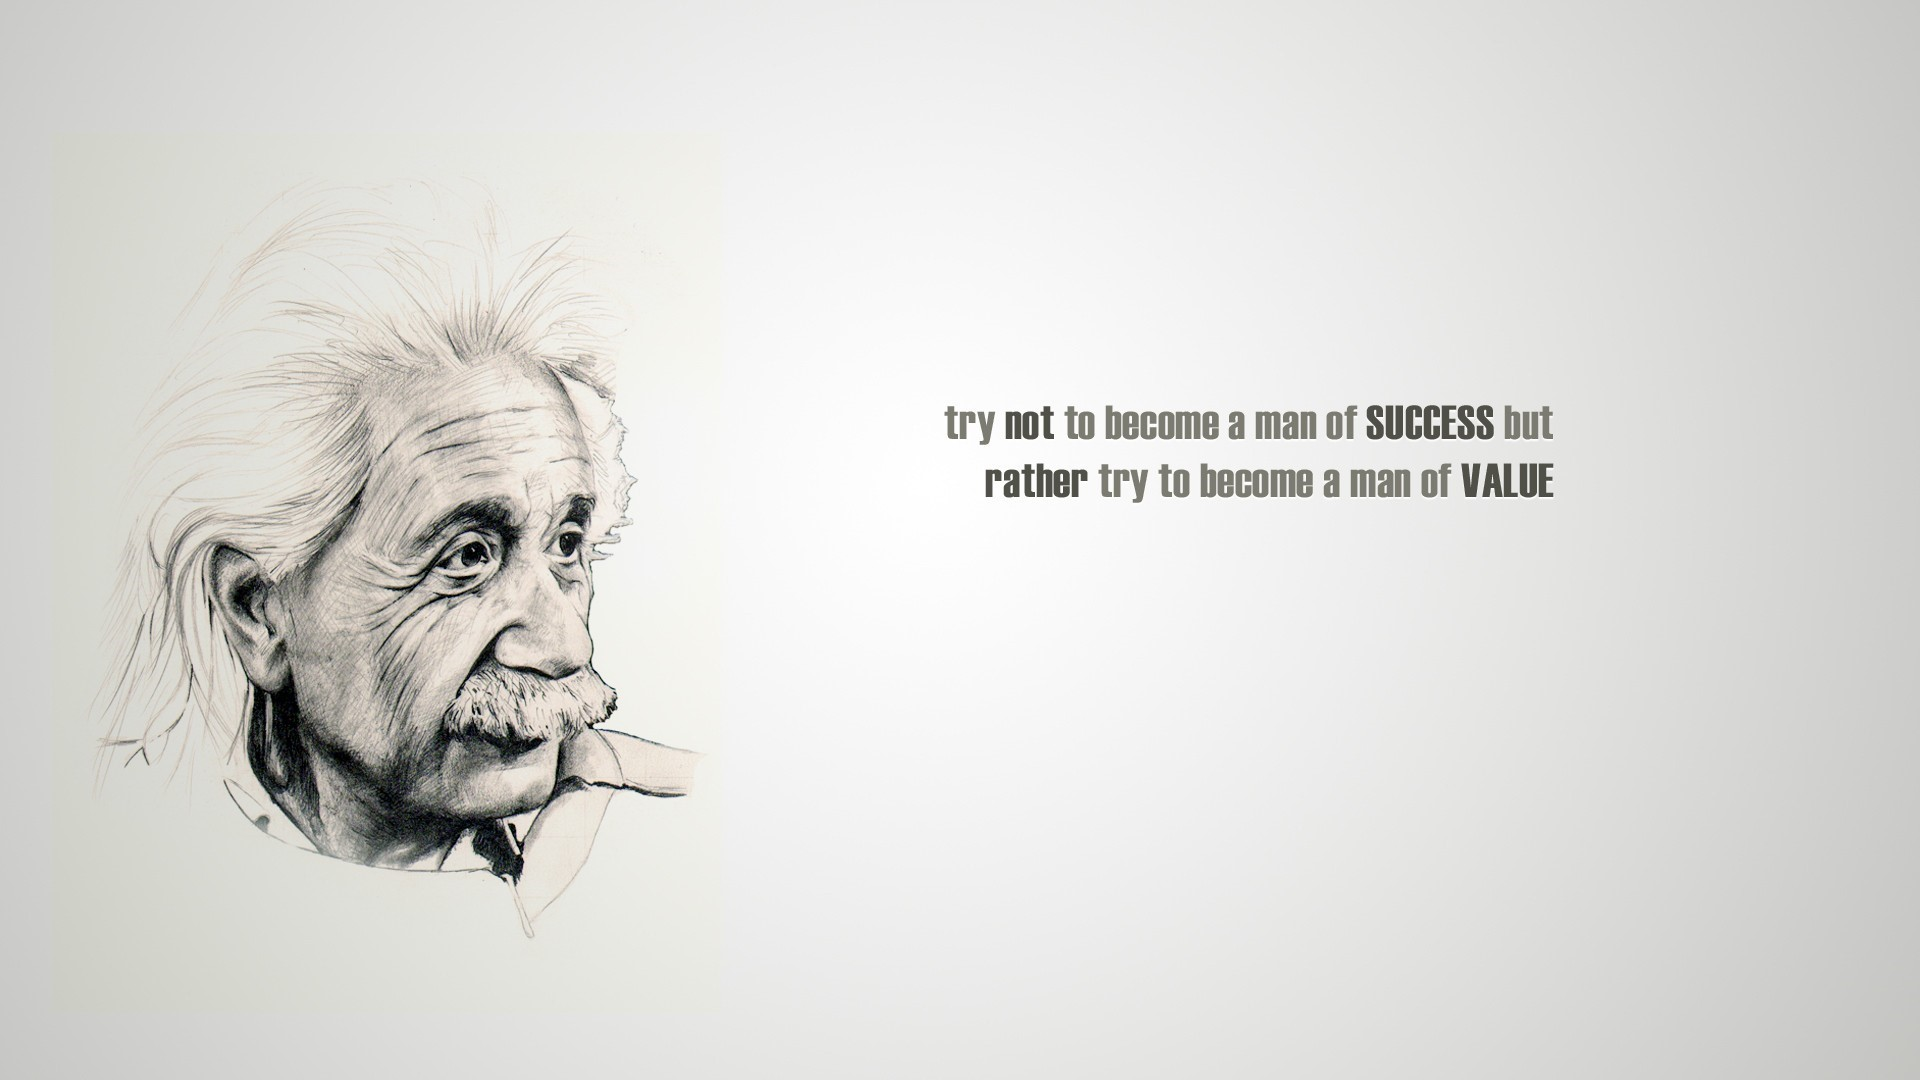 Hd wallpaper with quotes - Albert Einstein Quotes Success Success